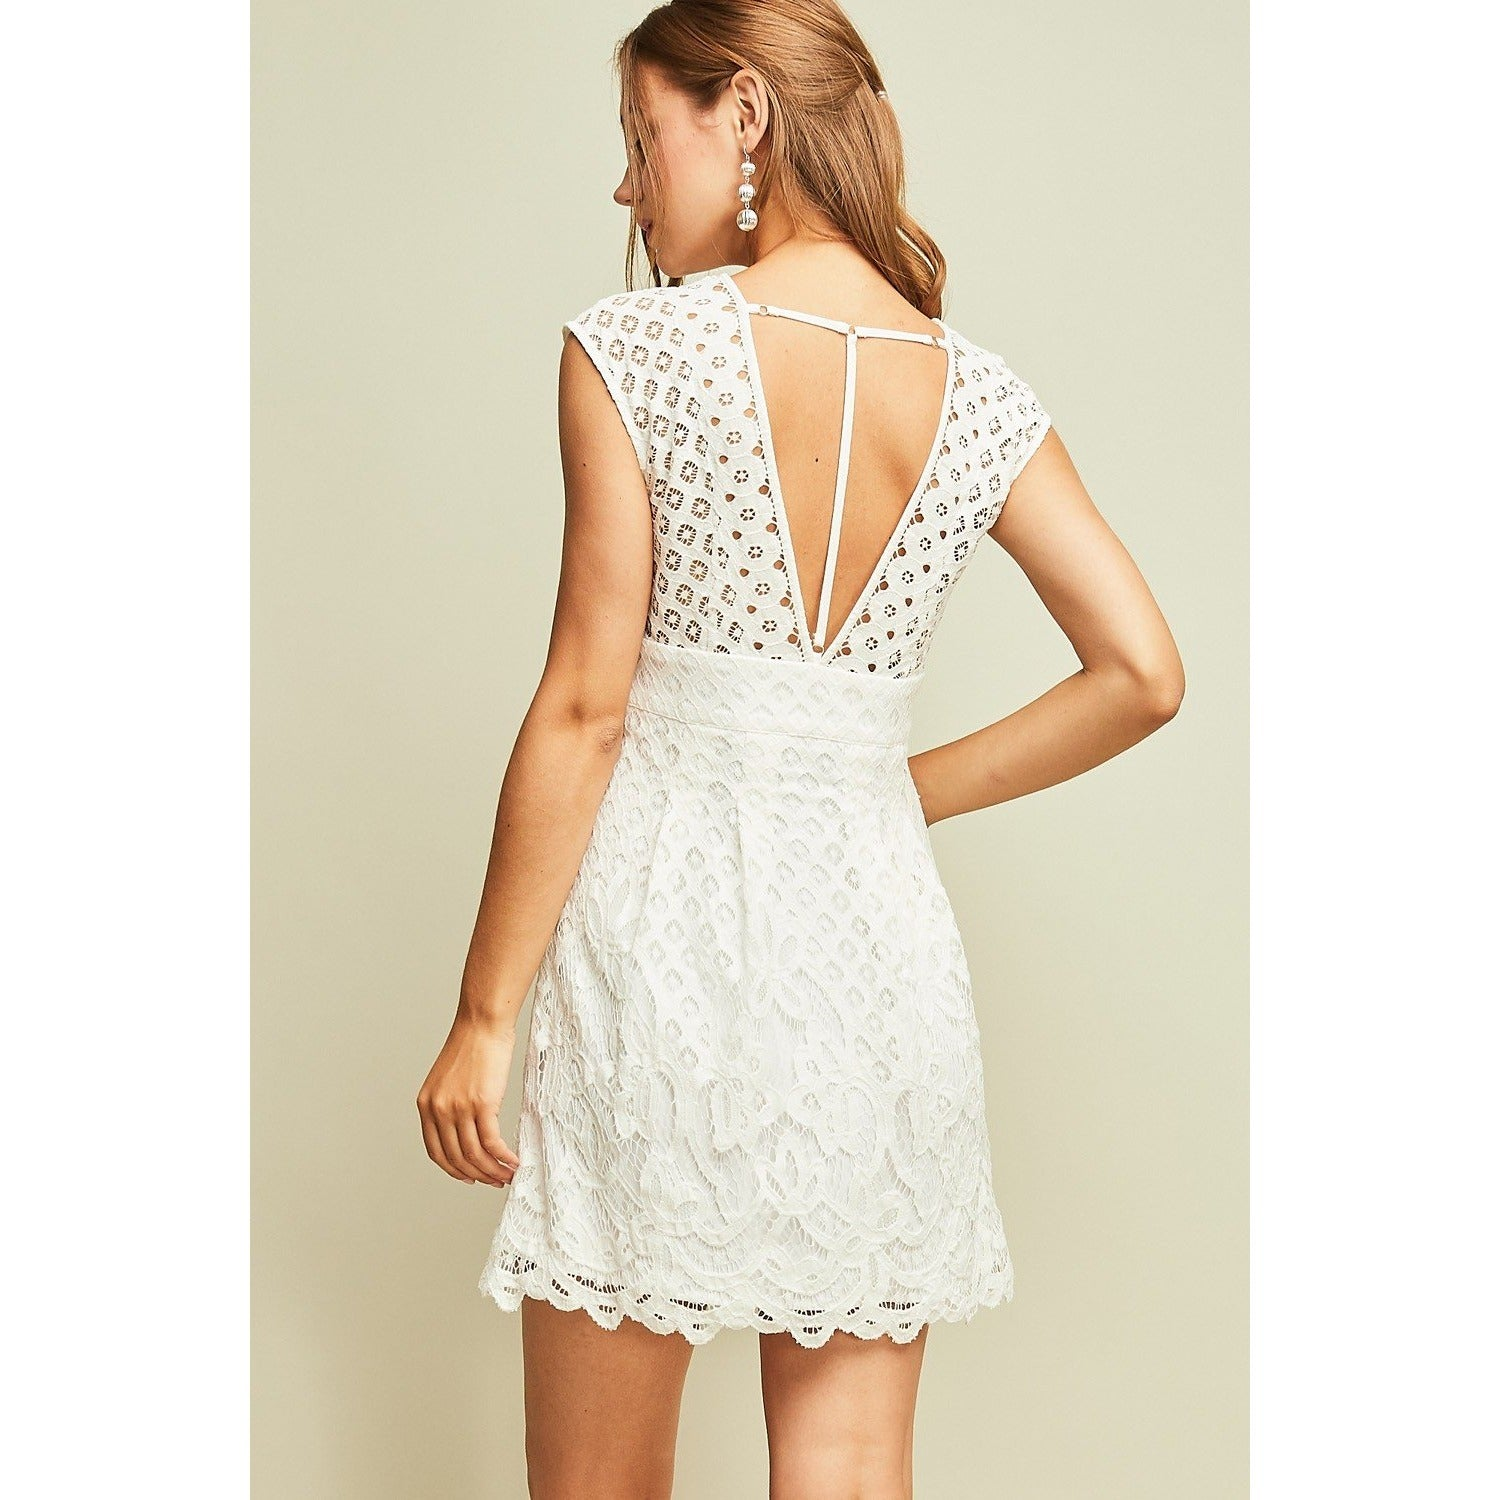 We Belong Together Lace Dress